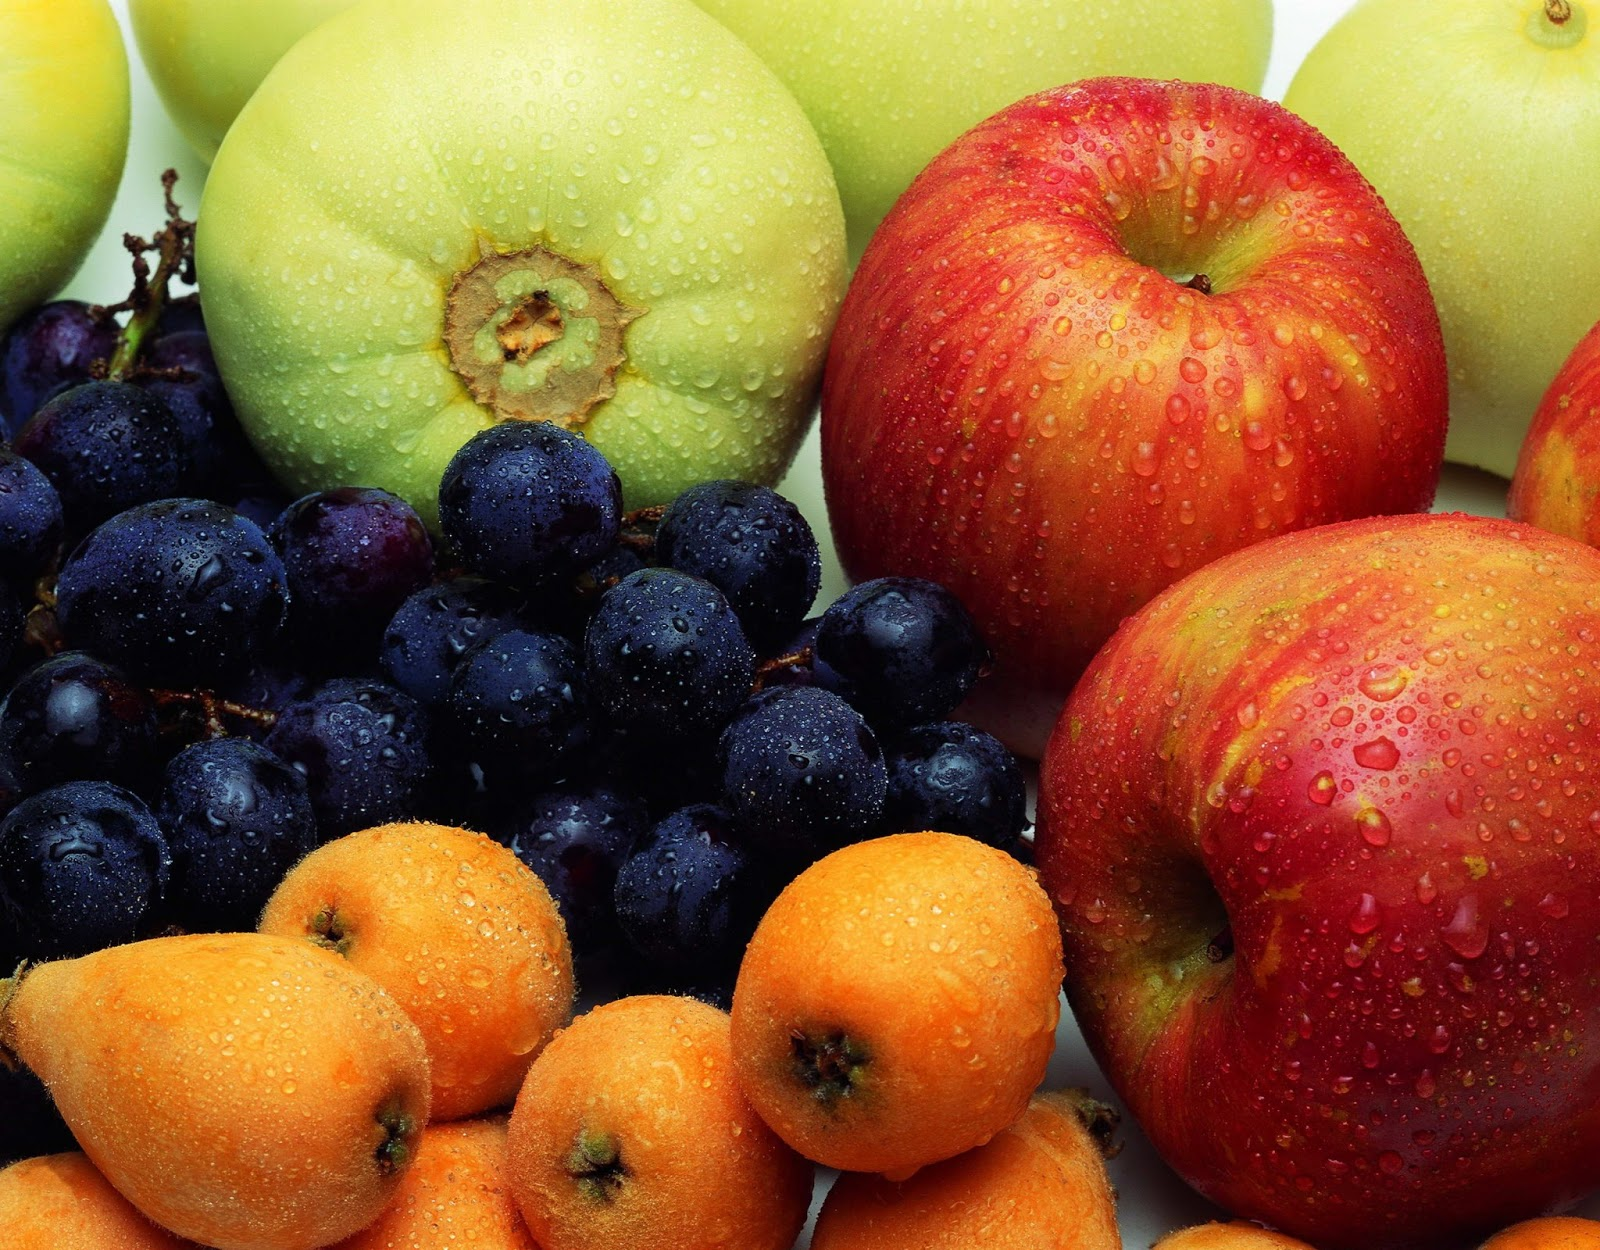 Fruits Wallpaper Download High Resolution Images Fruits